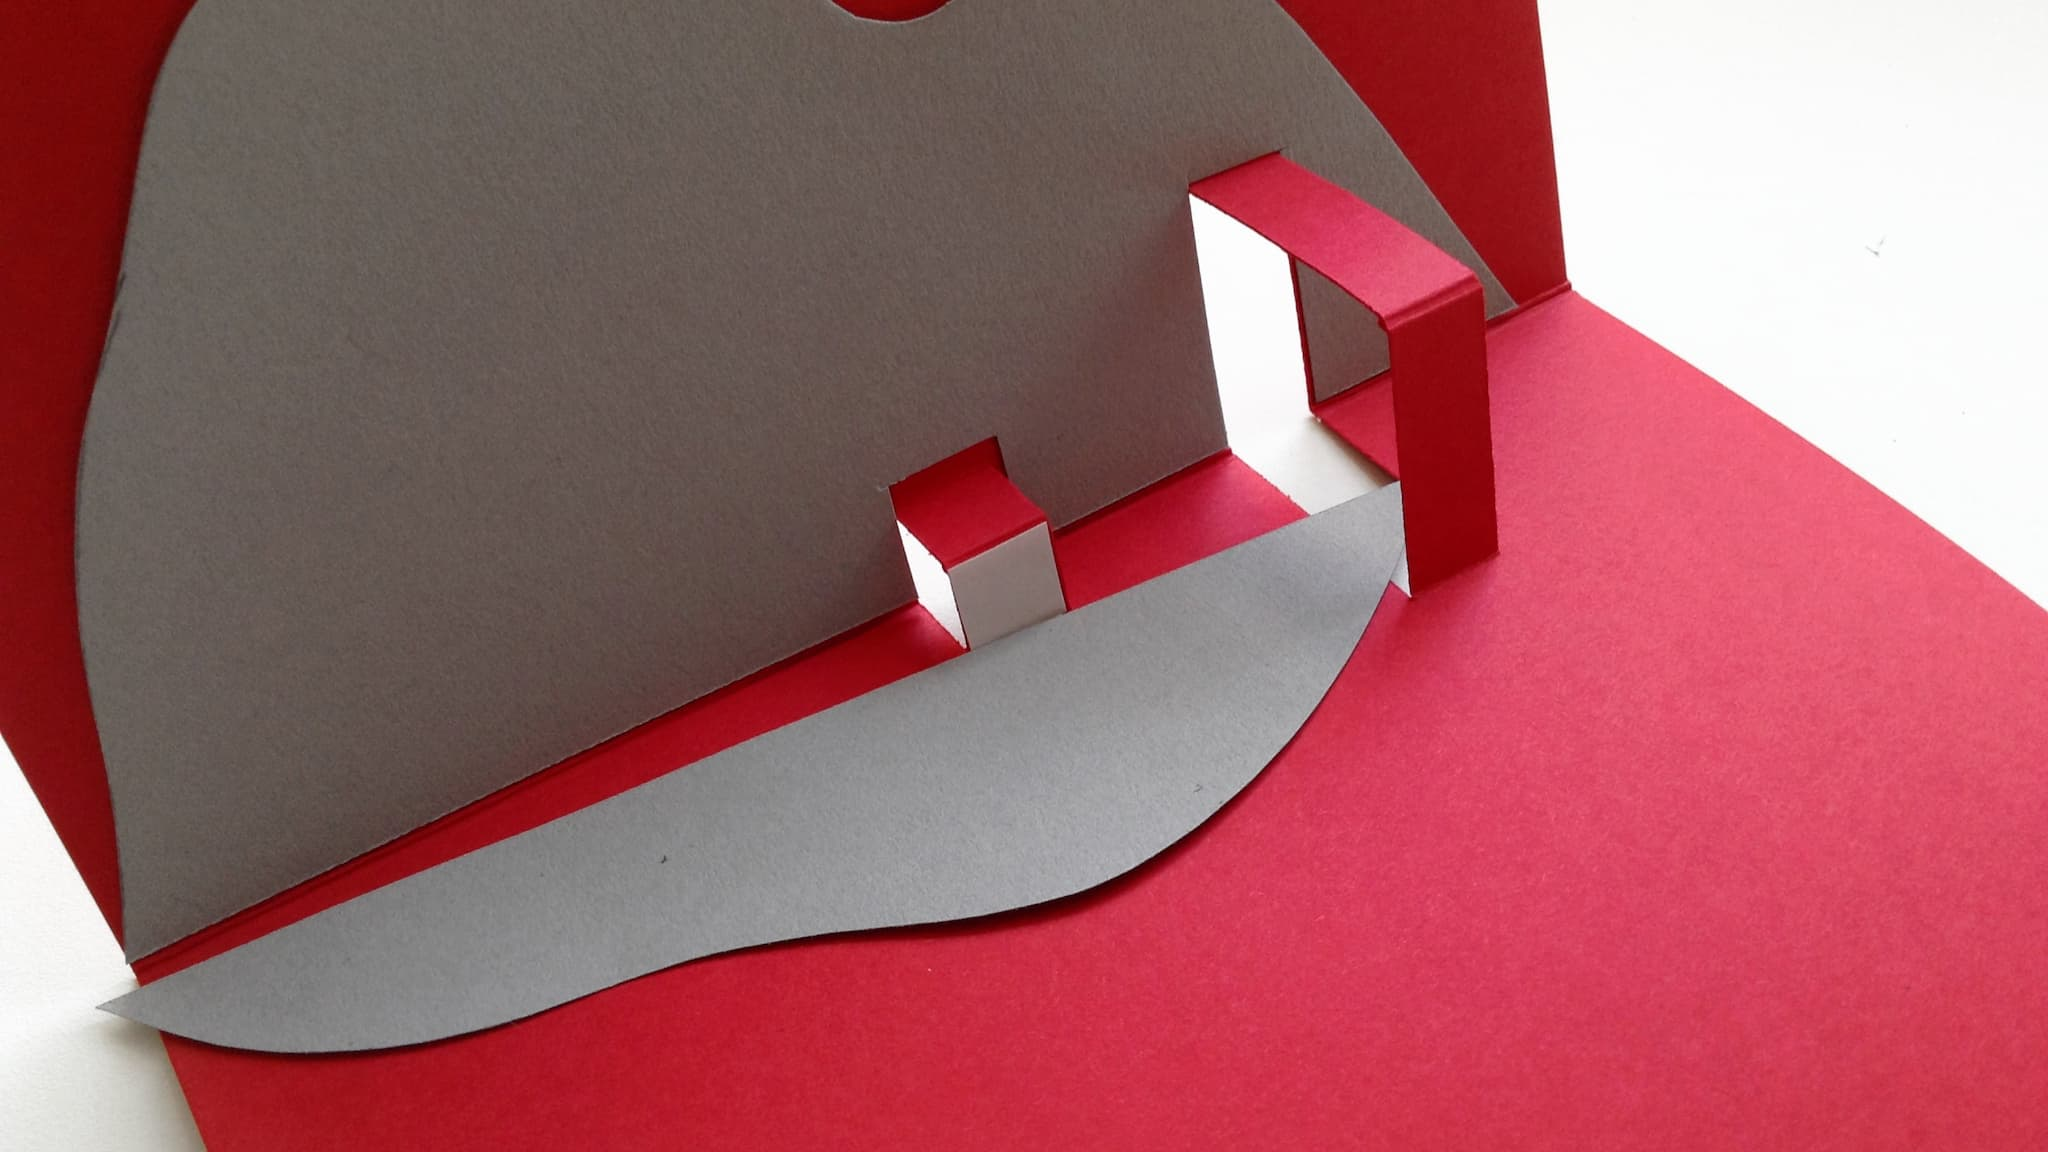 Stick the smaller mountain shape onto the smaller pop-out support